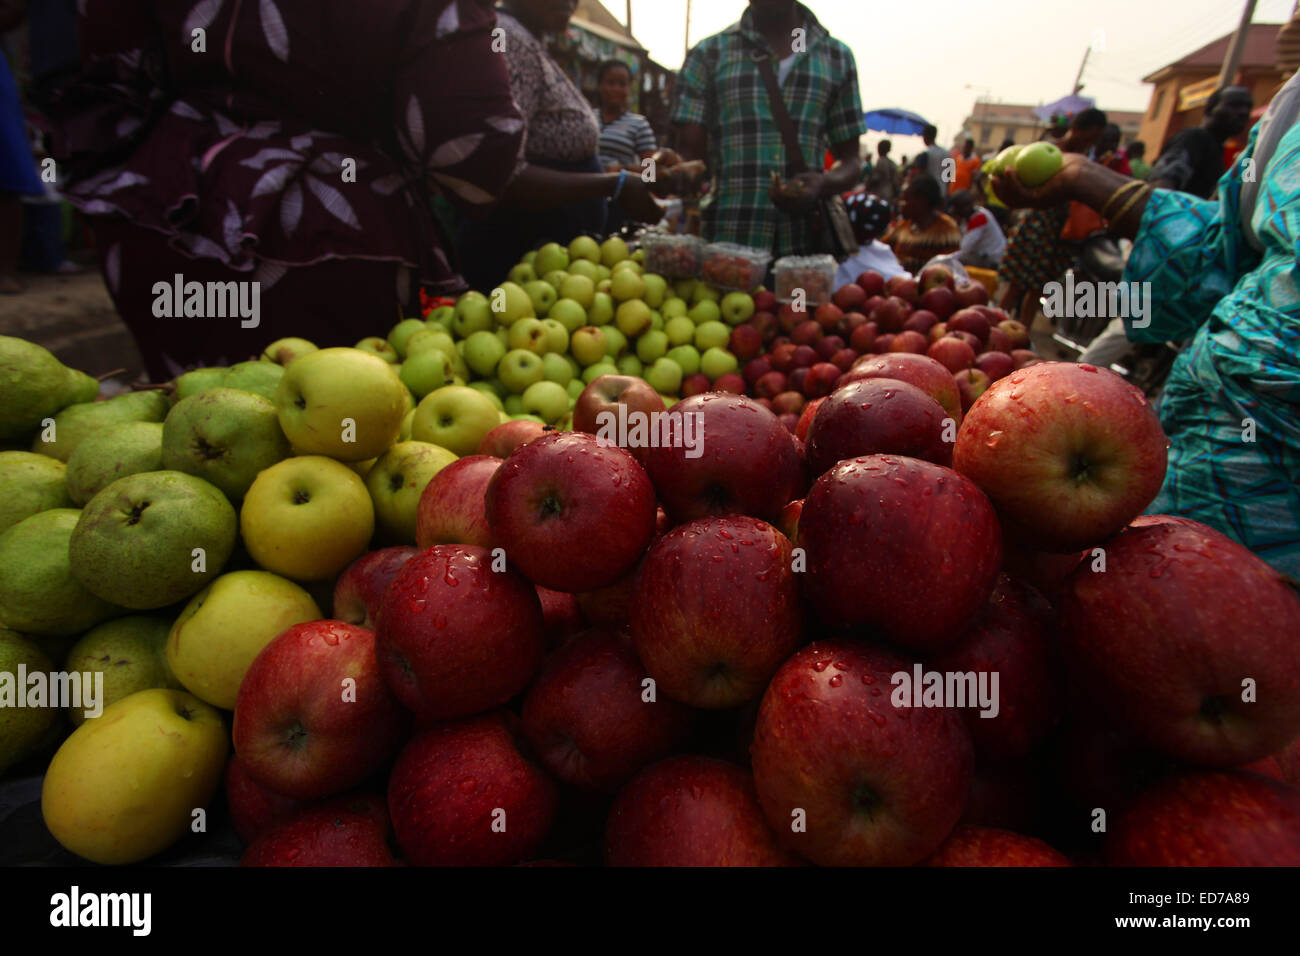 Layers of Apple and other fruits at an open market. - Stock Image